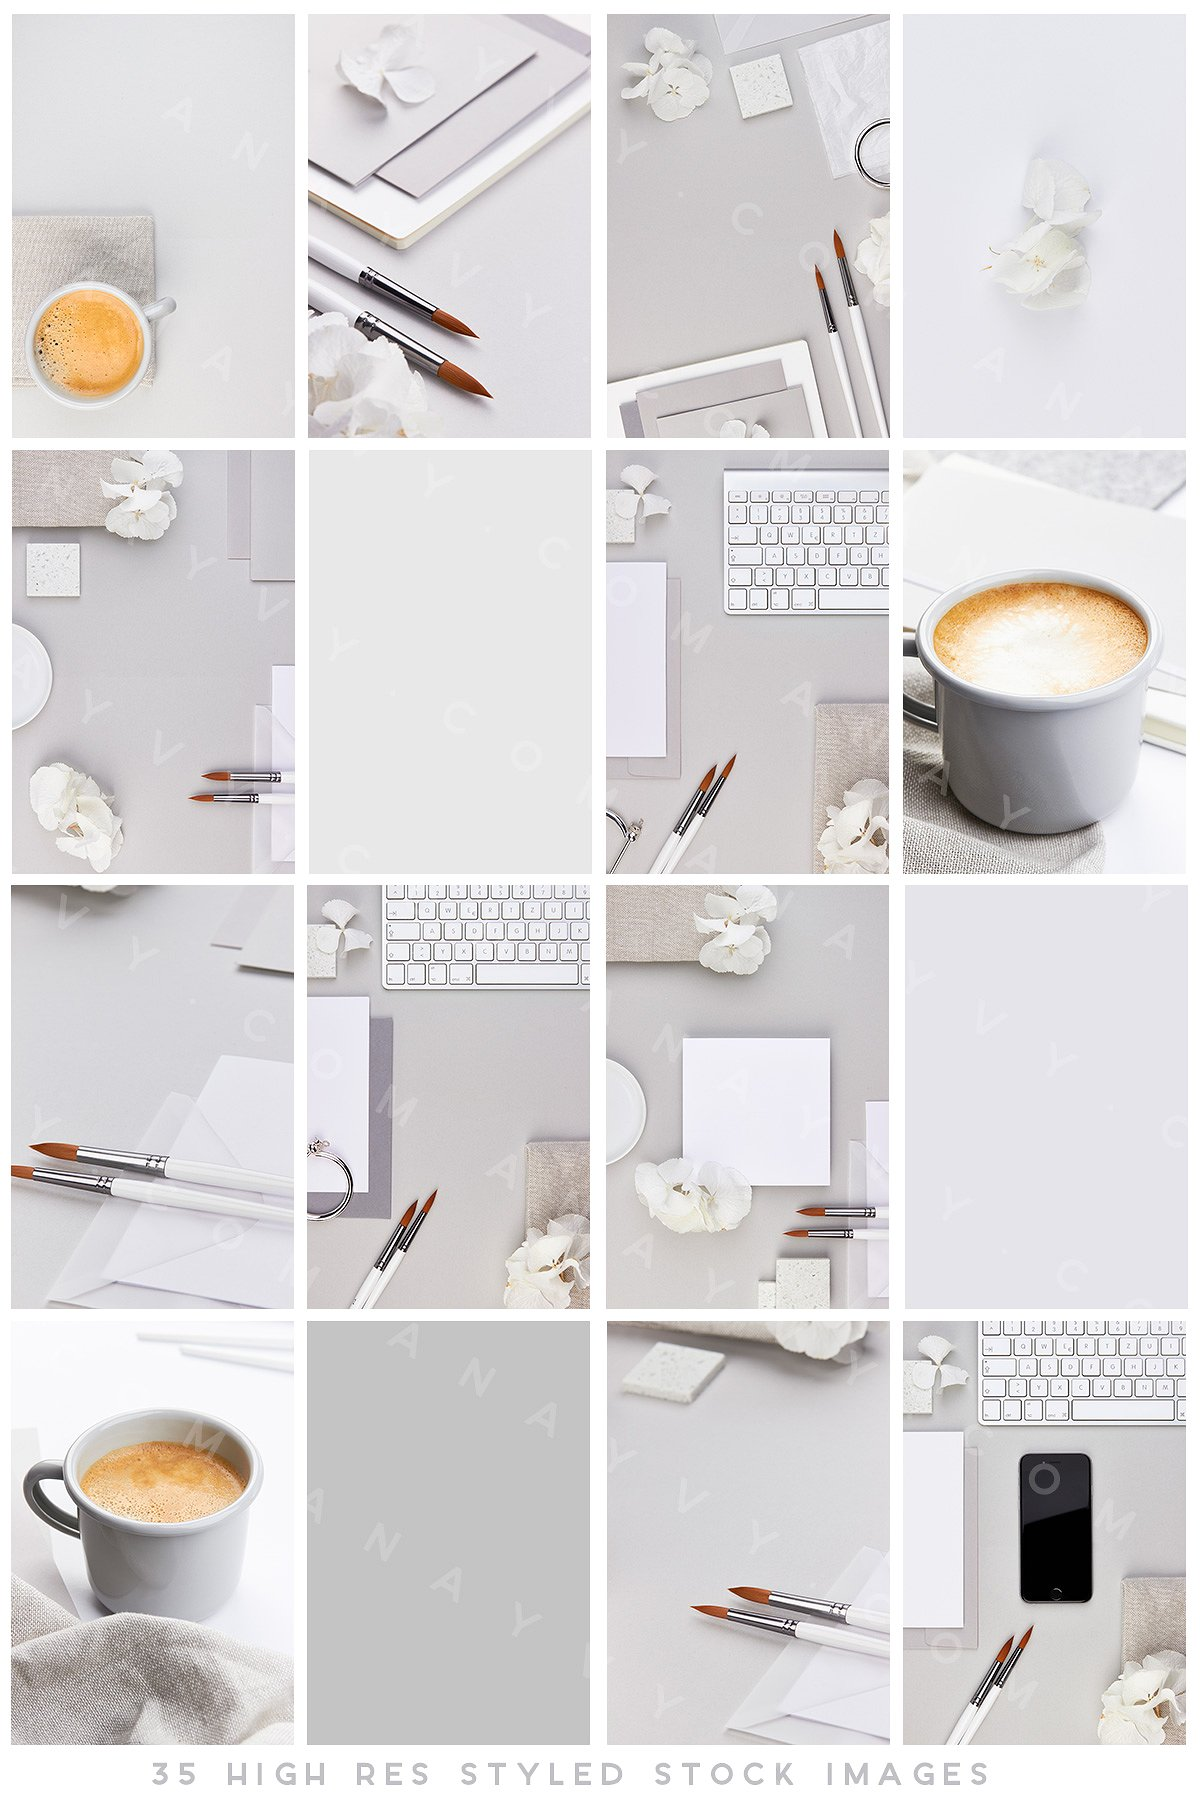 06-stock-image-mockup-collection-social-media-fashion-blogger-light-grey-sophisticated-white-silver-